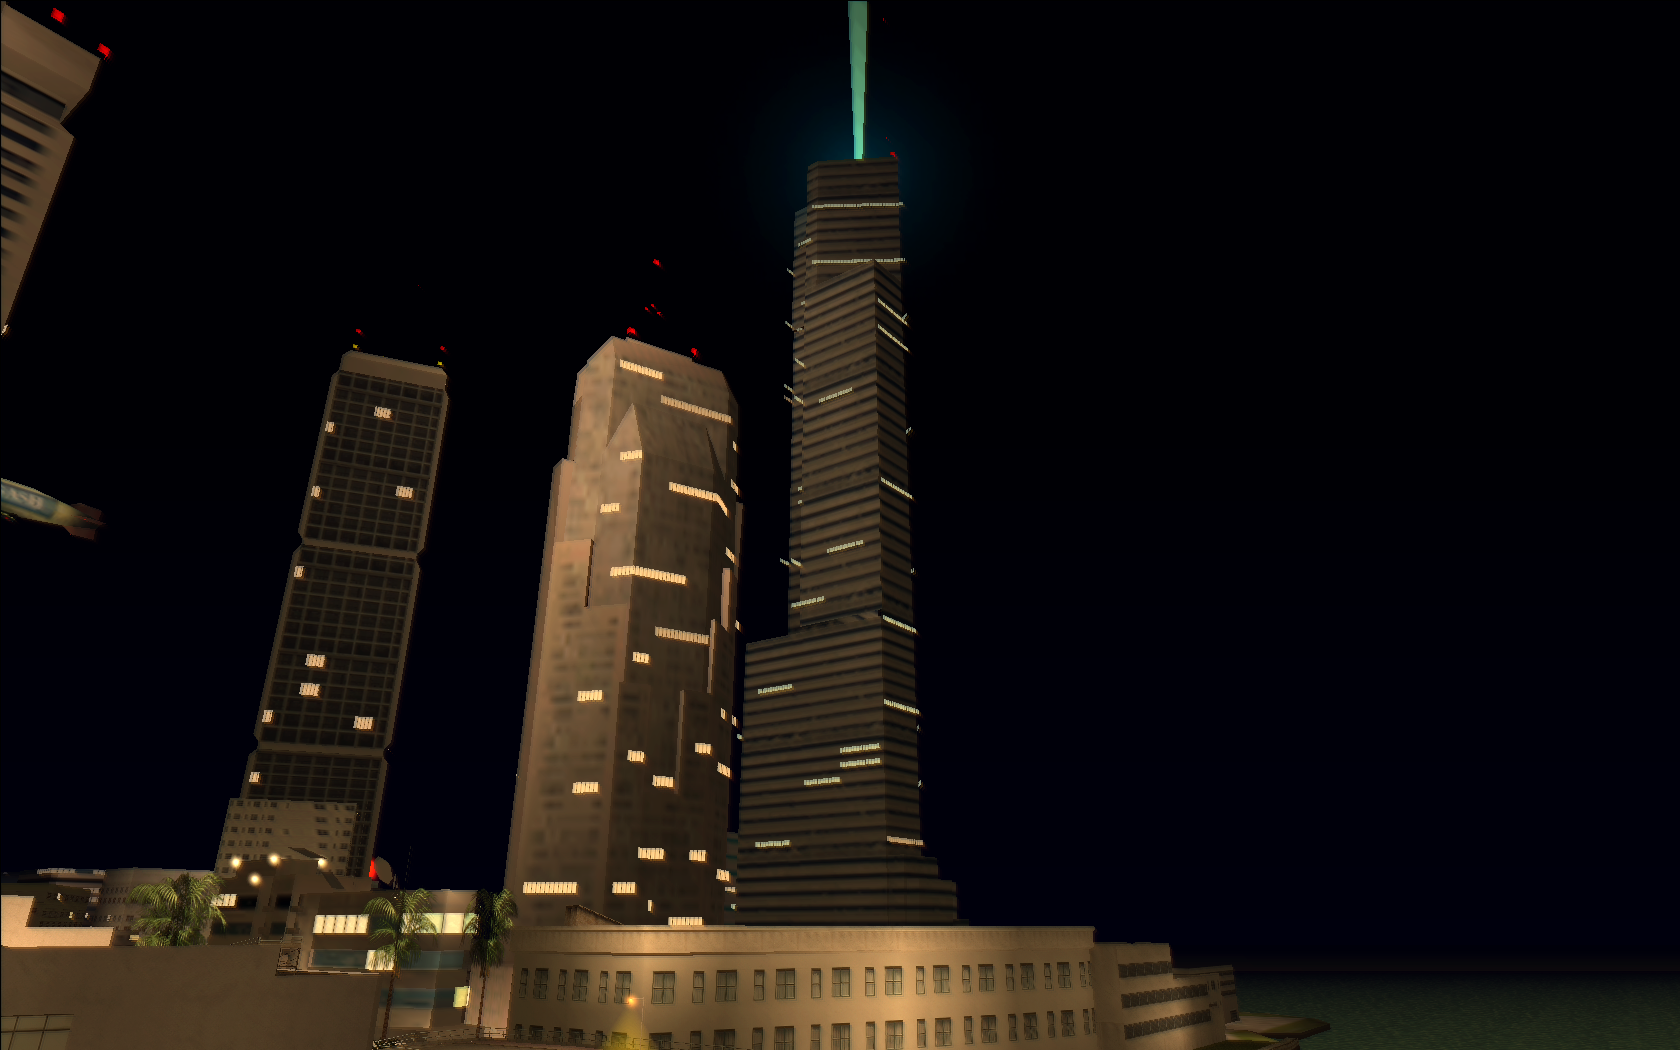 Vice City Tower